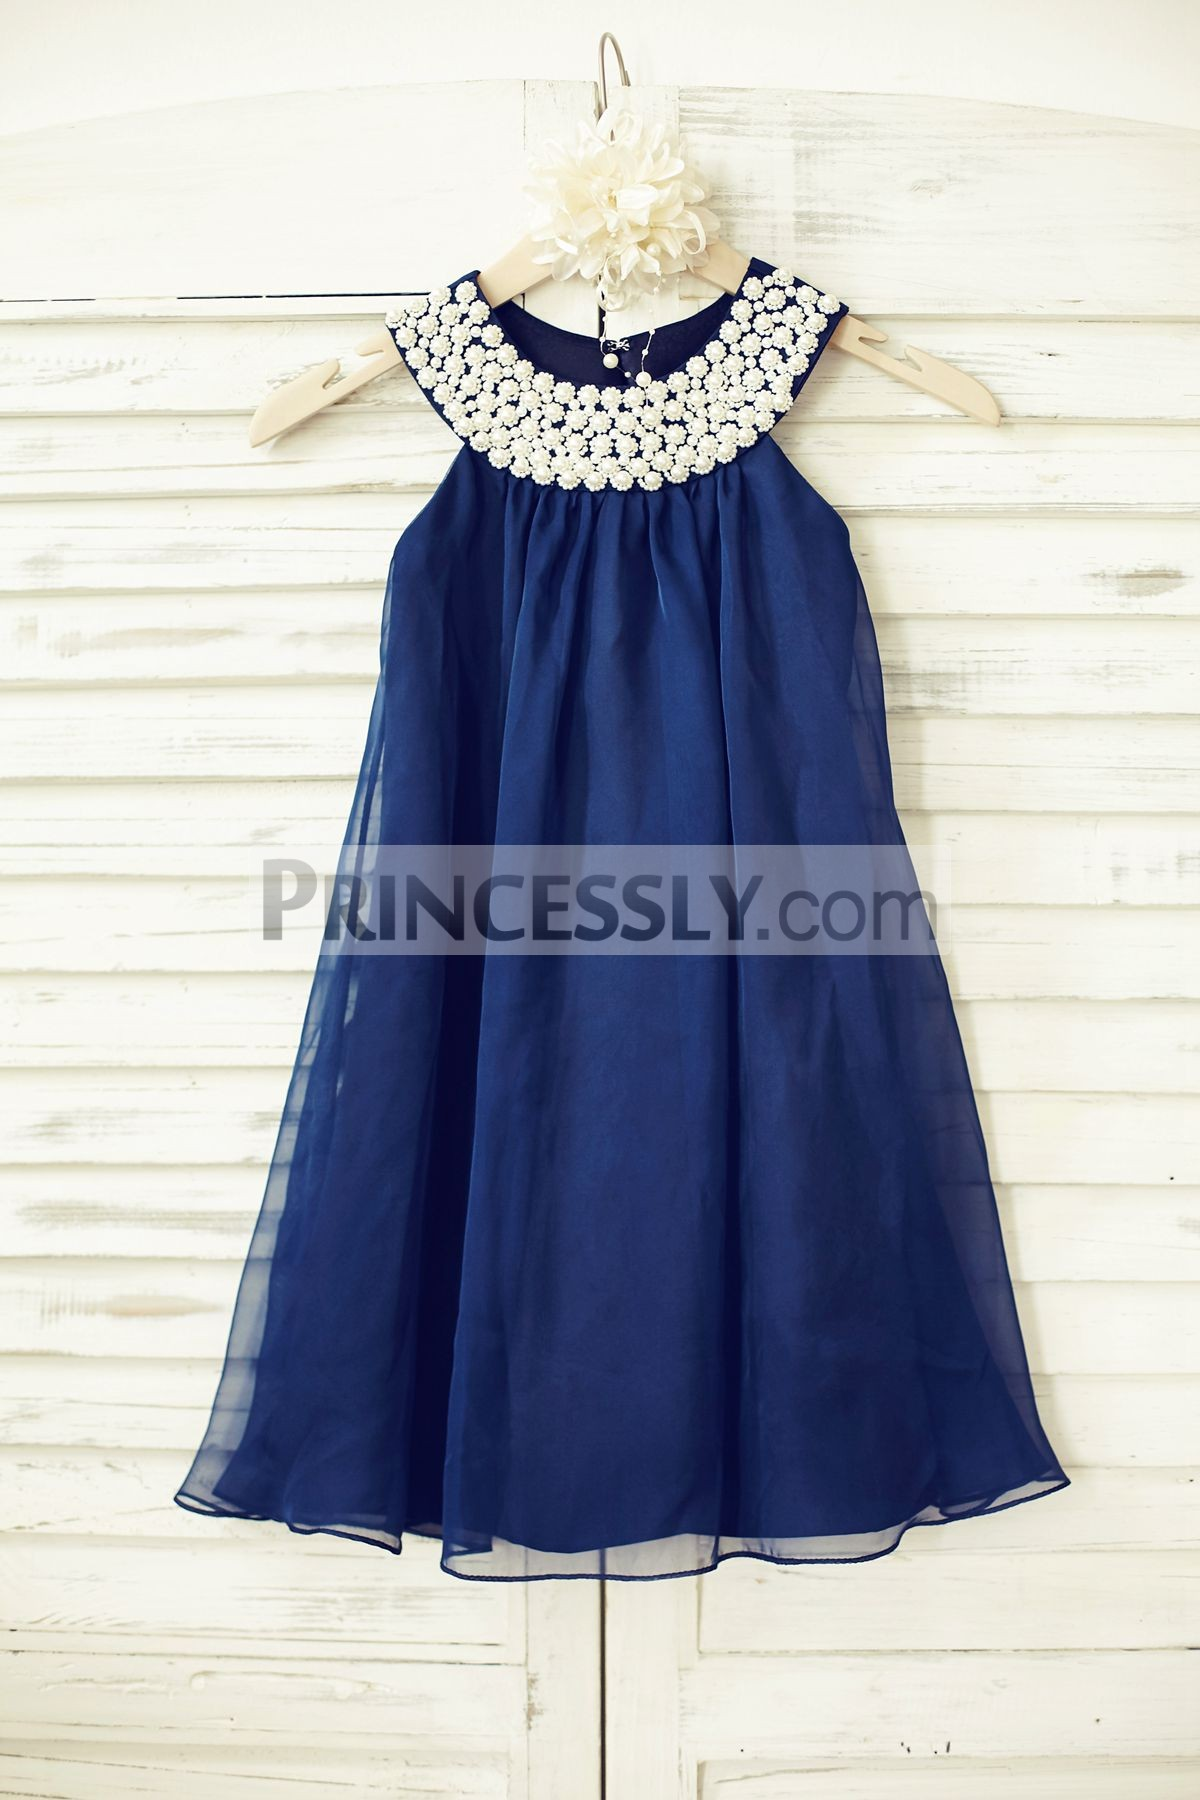 Boho Beach Navy Blue Chiffon Wedding Flower Girl Dress with Pearl ...